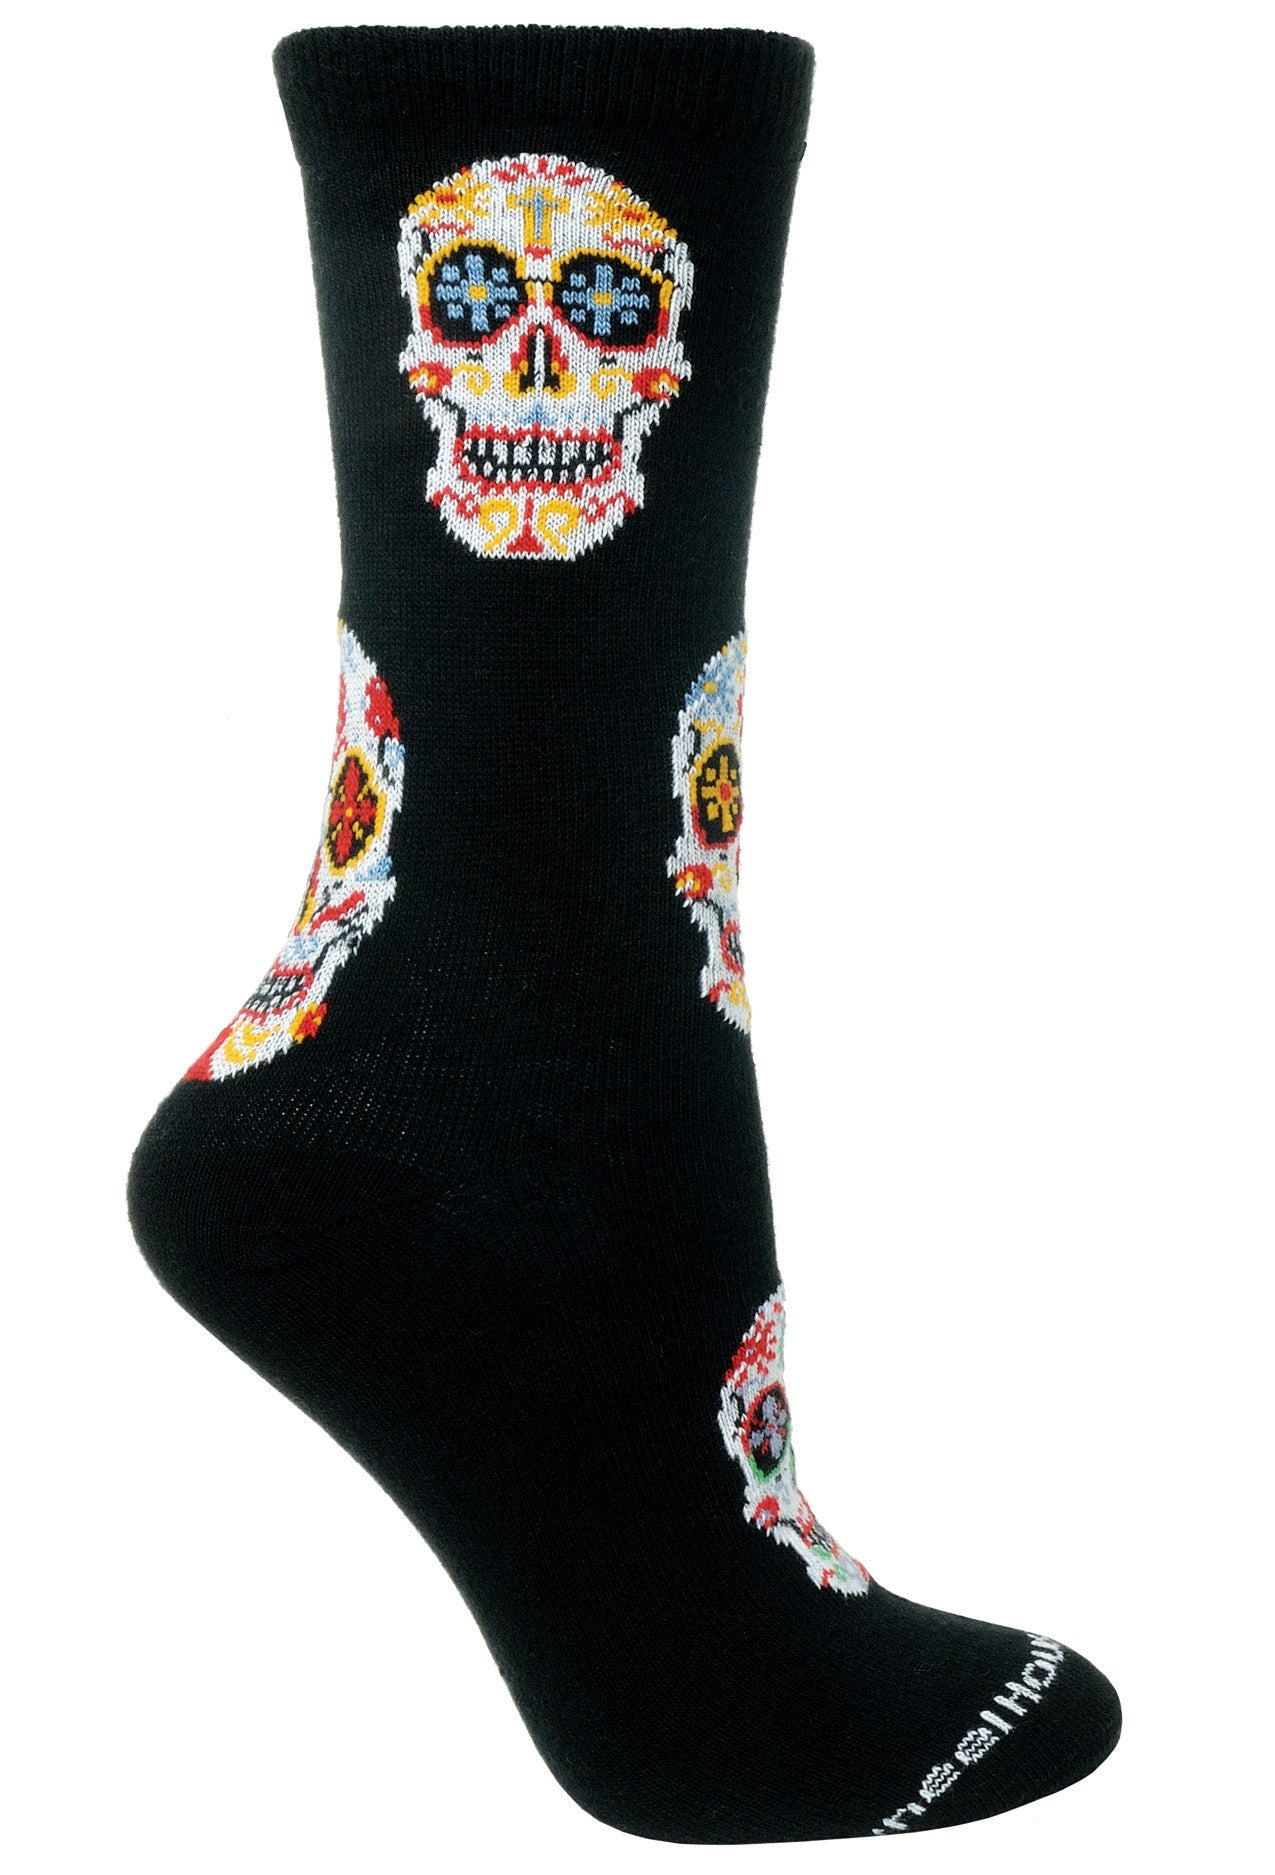 Day of the Dead Crew Socks on Black